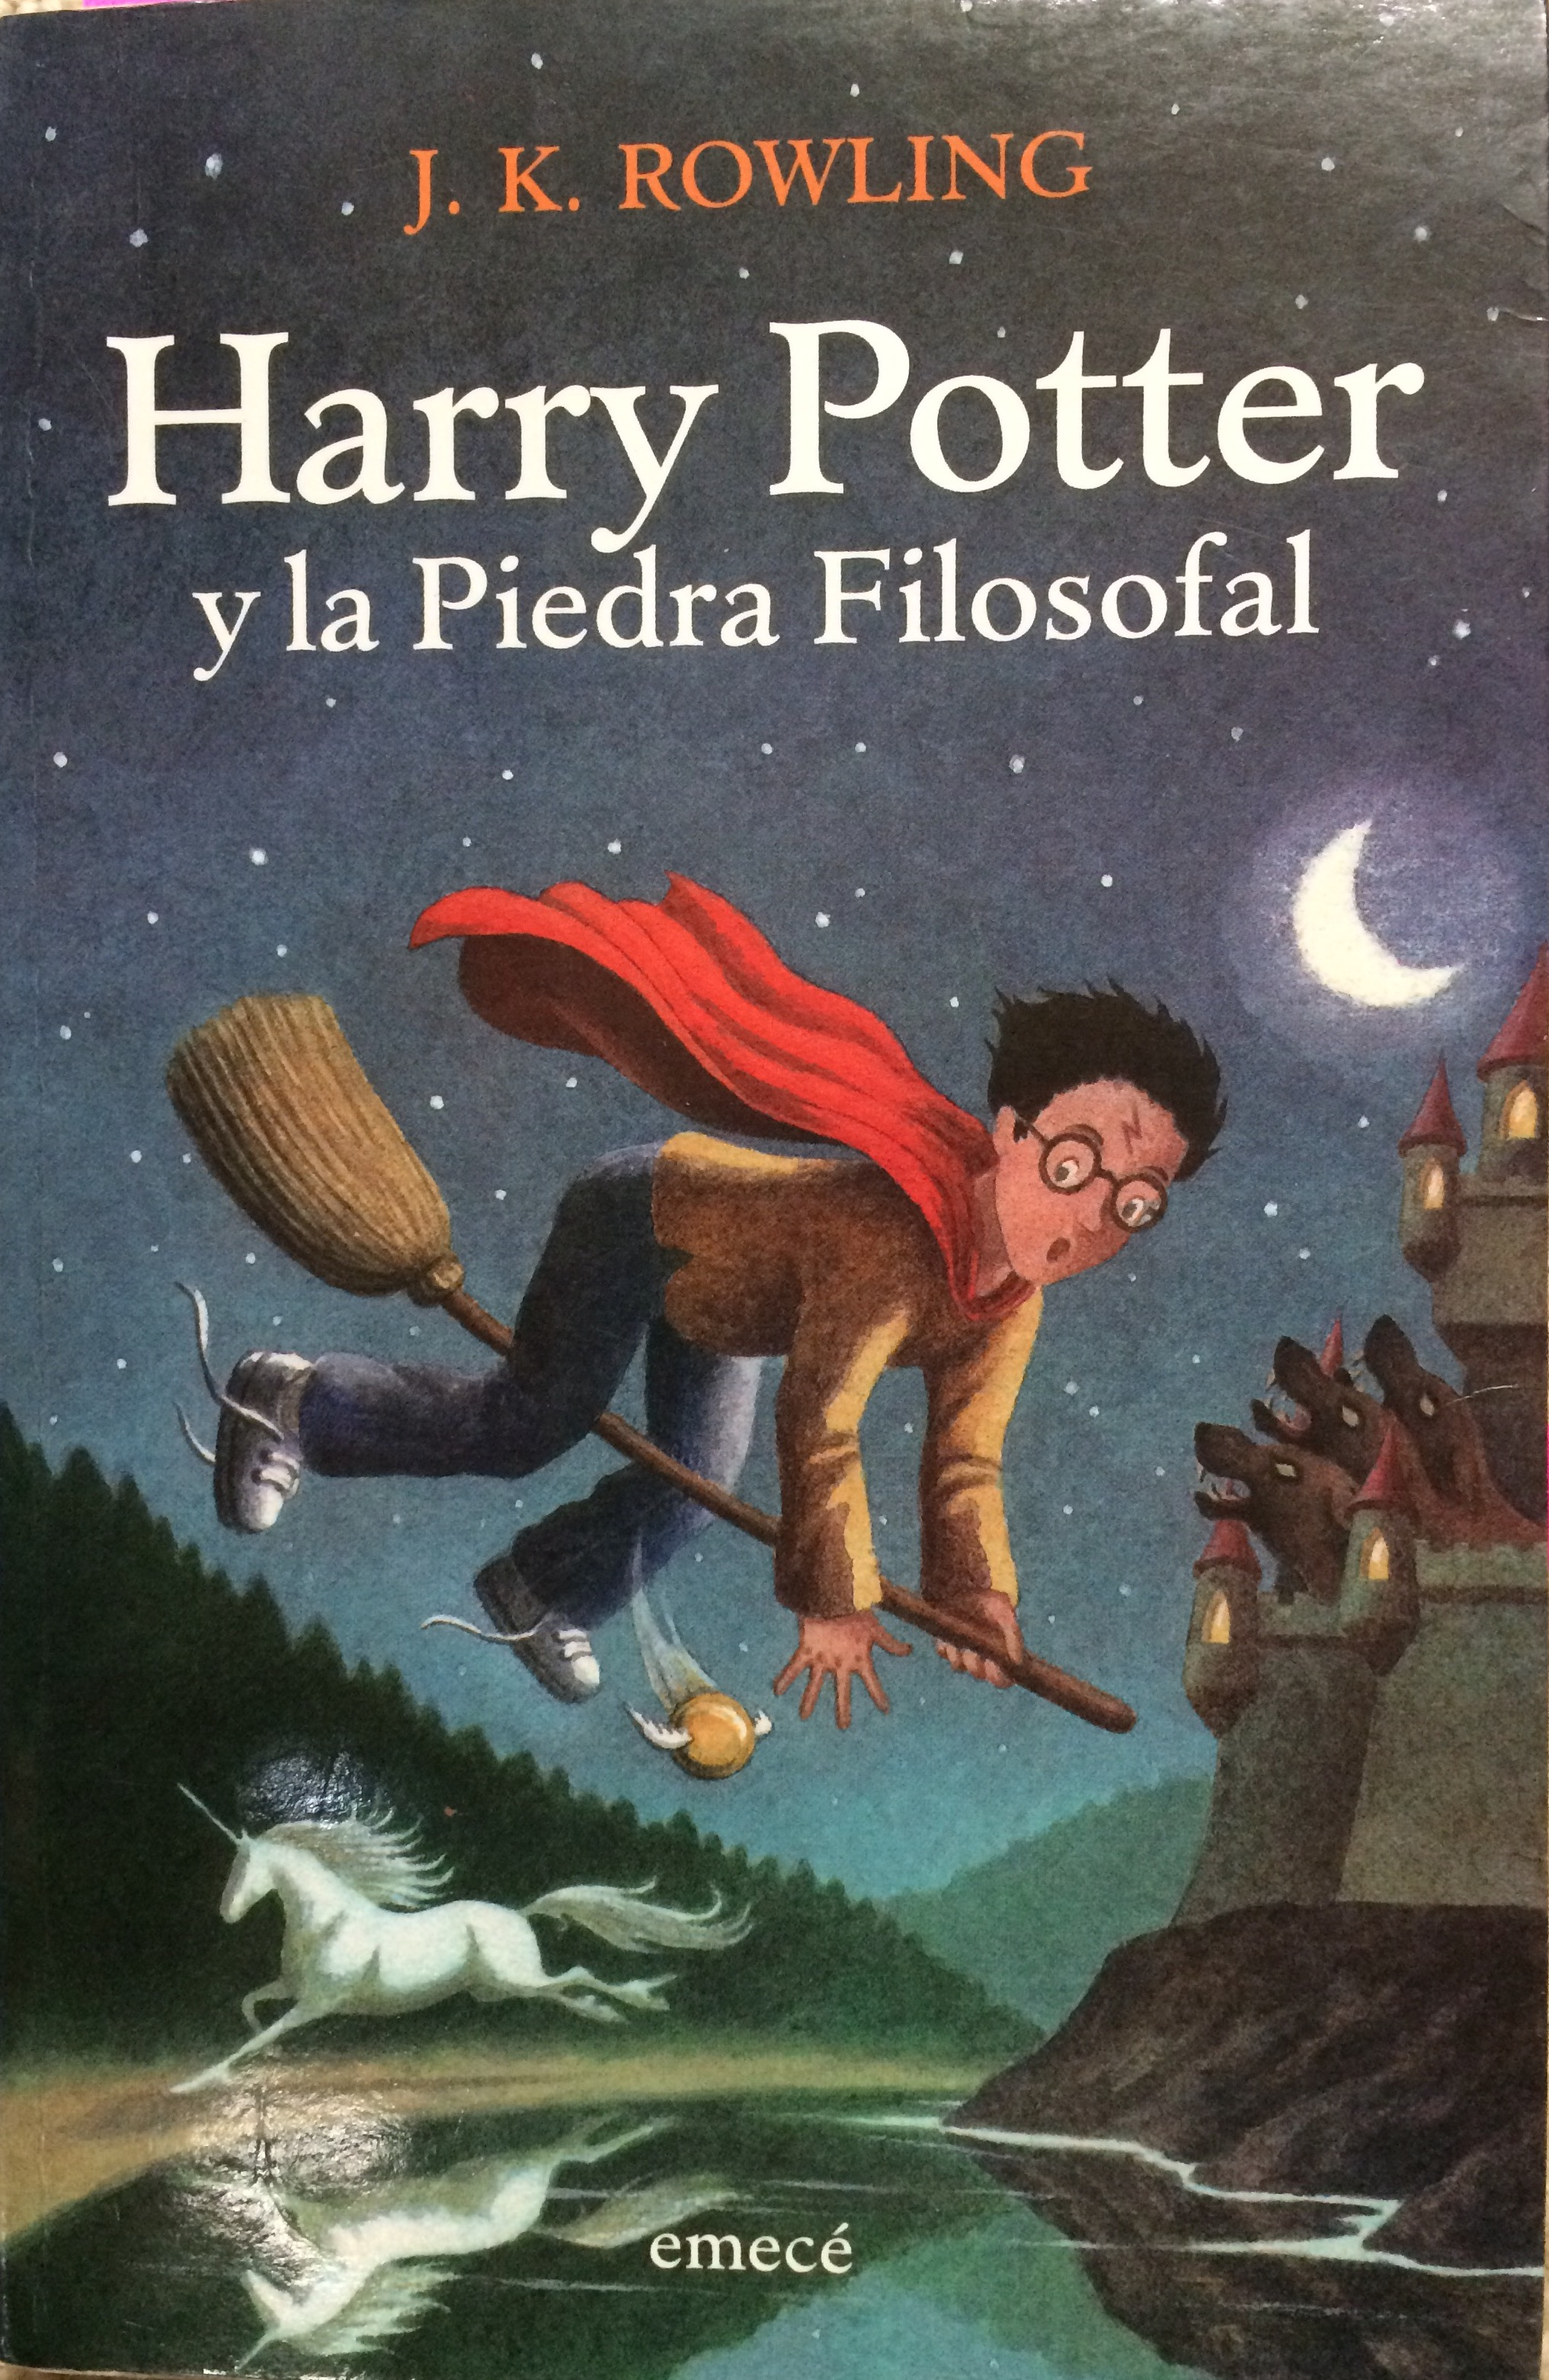 harry potter and the recycled spanish cover  u2013 potterglot